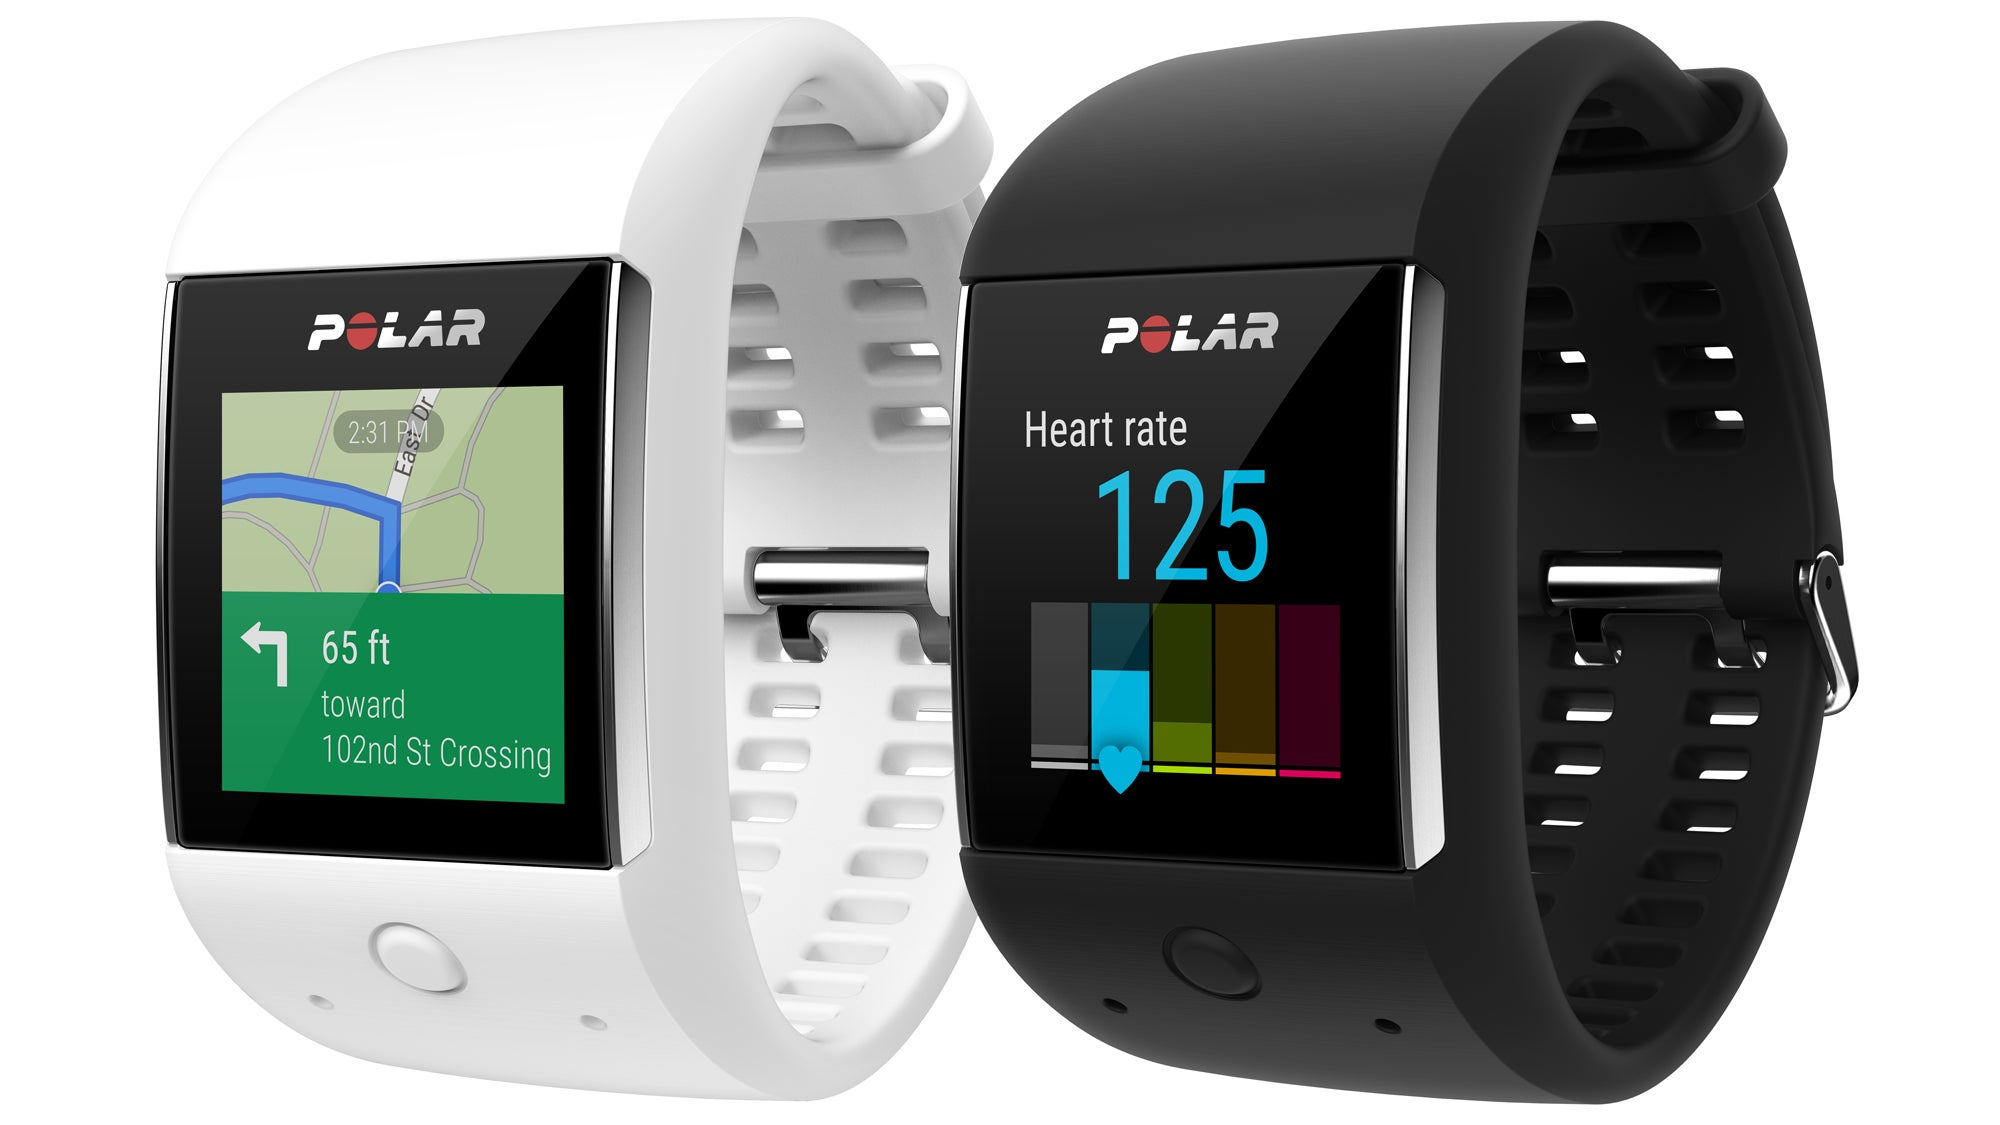 Polar pairs Android Wear with fitness tracking for the M600 sports watch